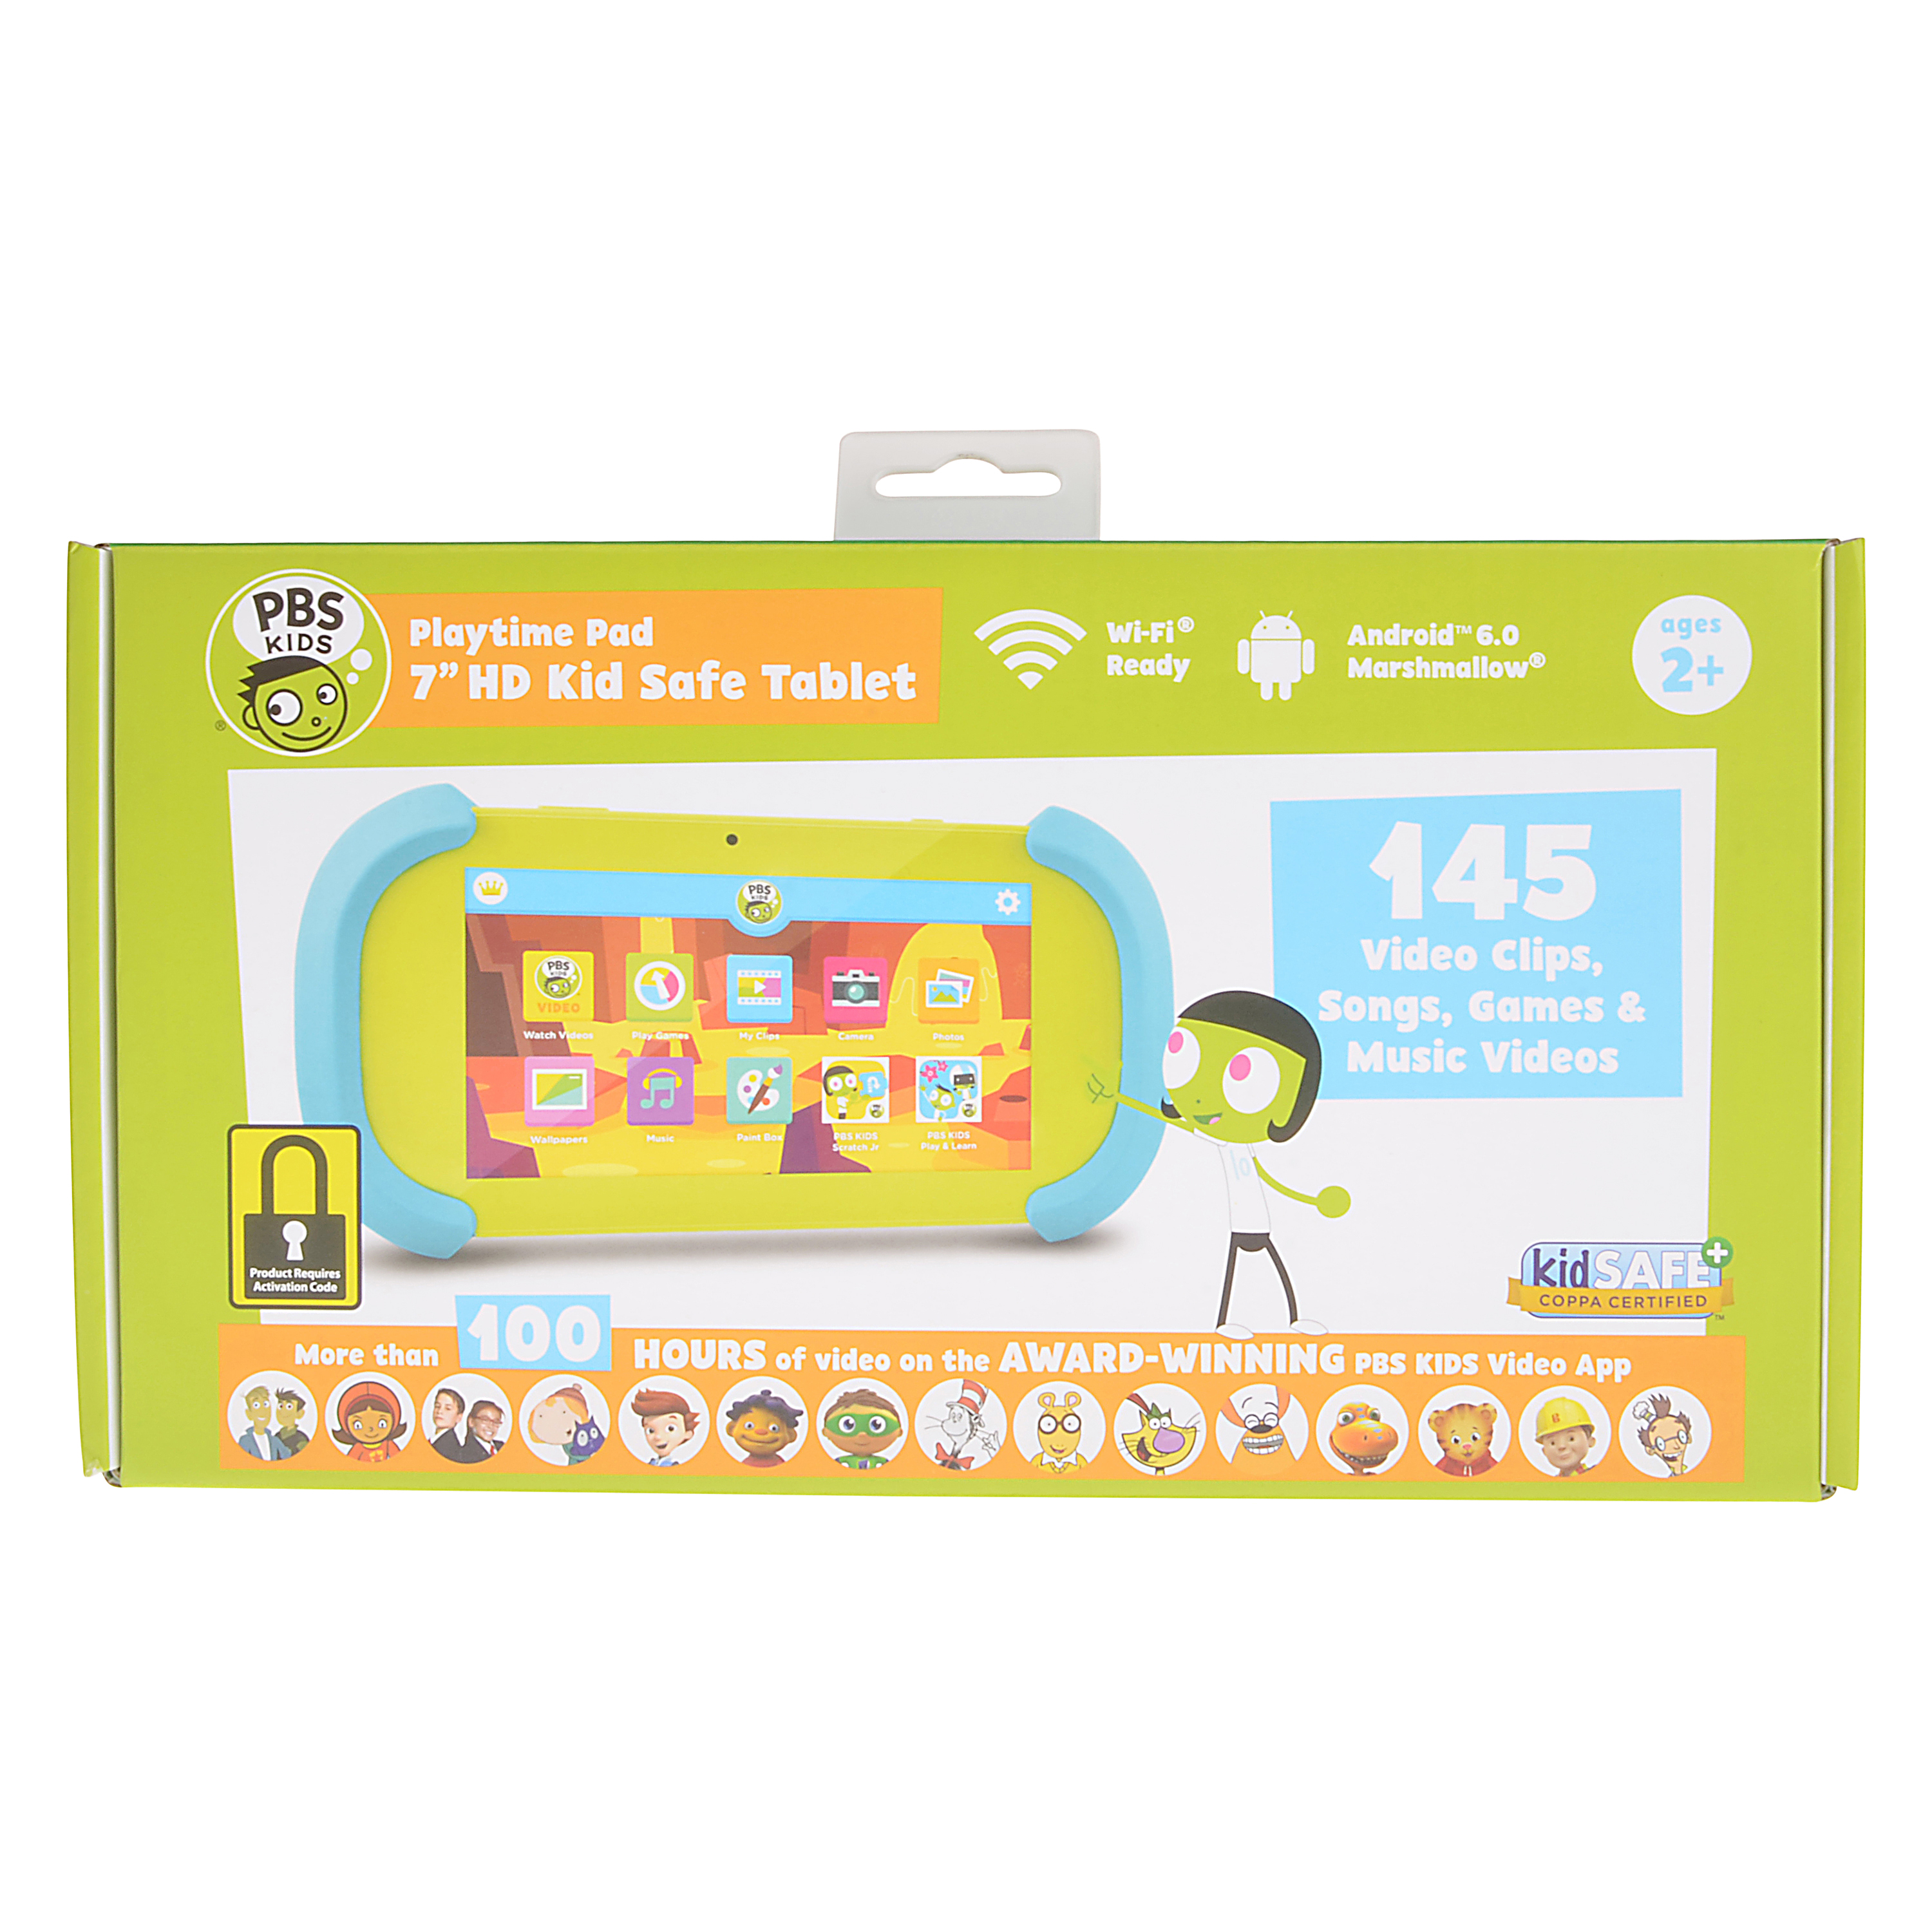 "7"" HD PBS Kids Playtime Pad Kid Safe Tablet - WiFi Ready"